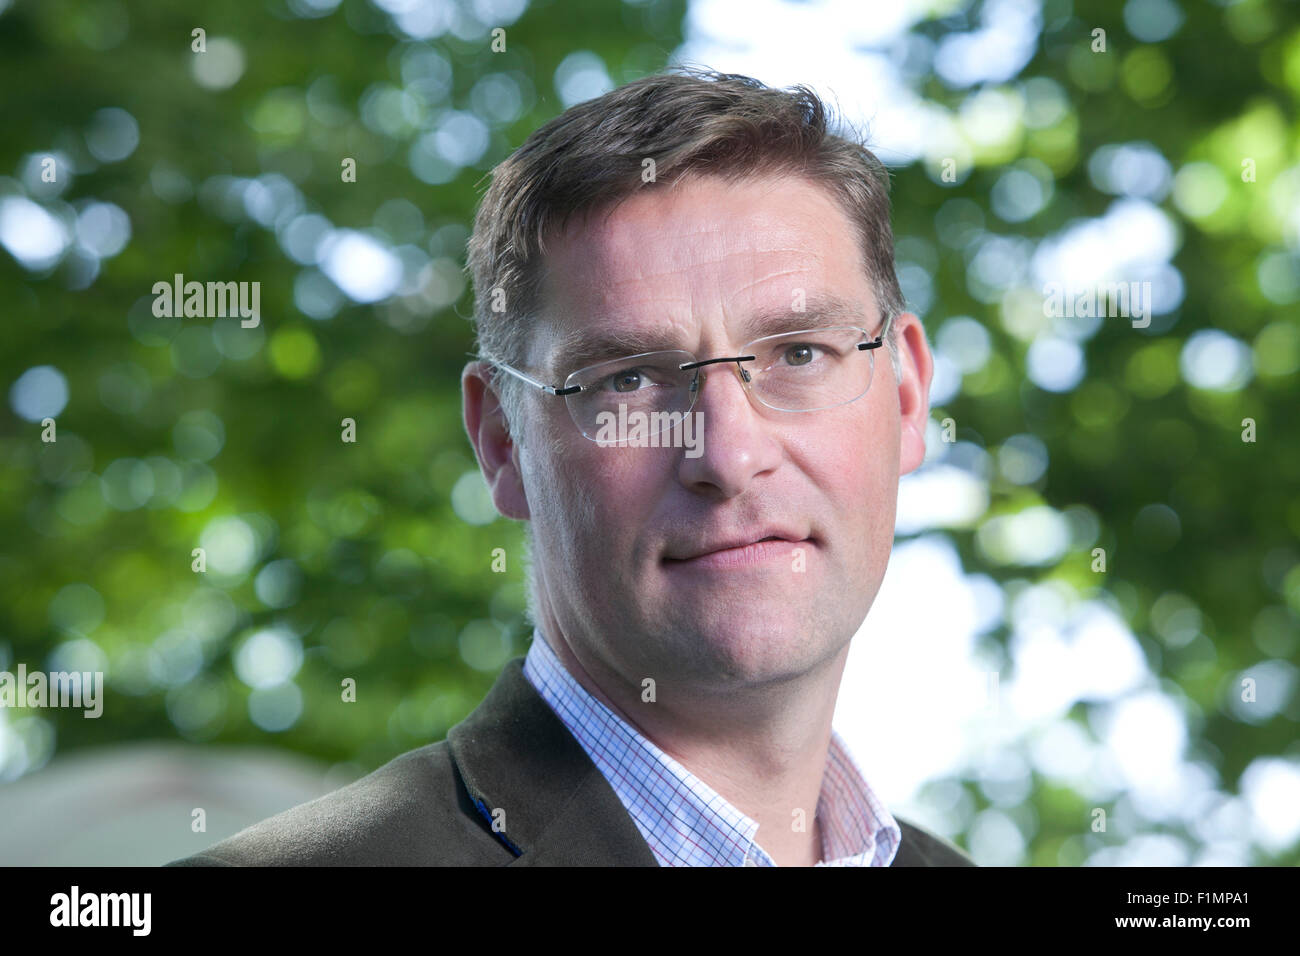 Magnus MacFarlane-Barrow, founder and CEO of Mary's Meals, at the Edinburgh International Book Festival 2015. - Stock Image